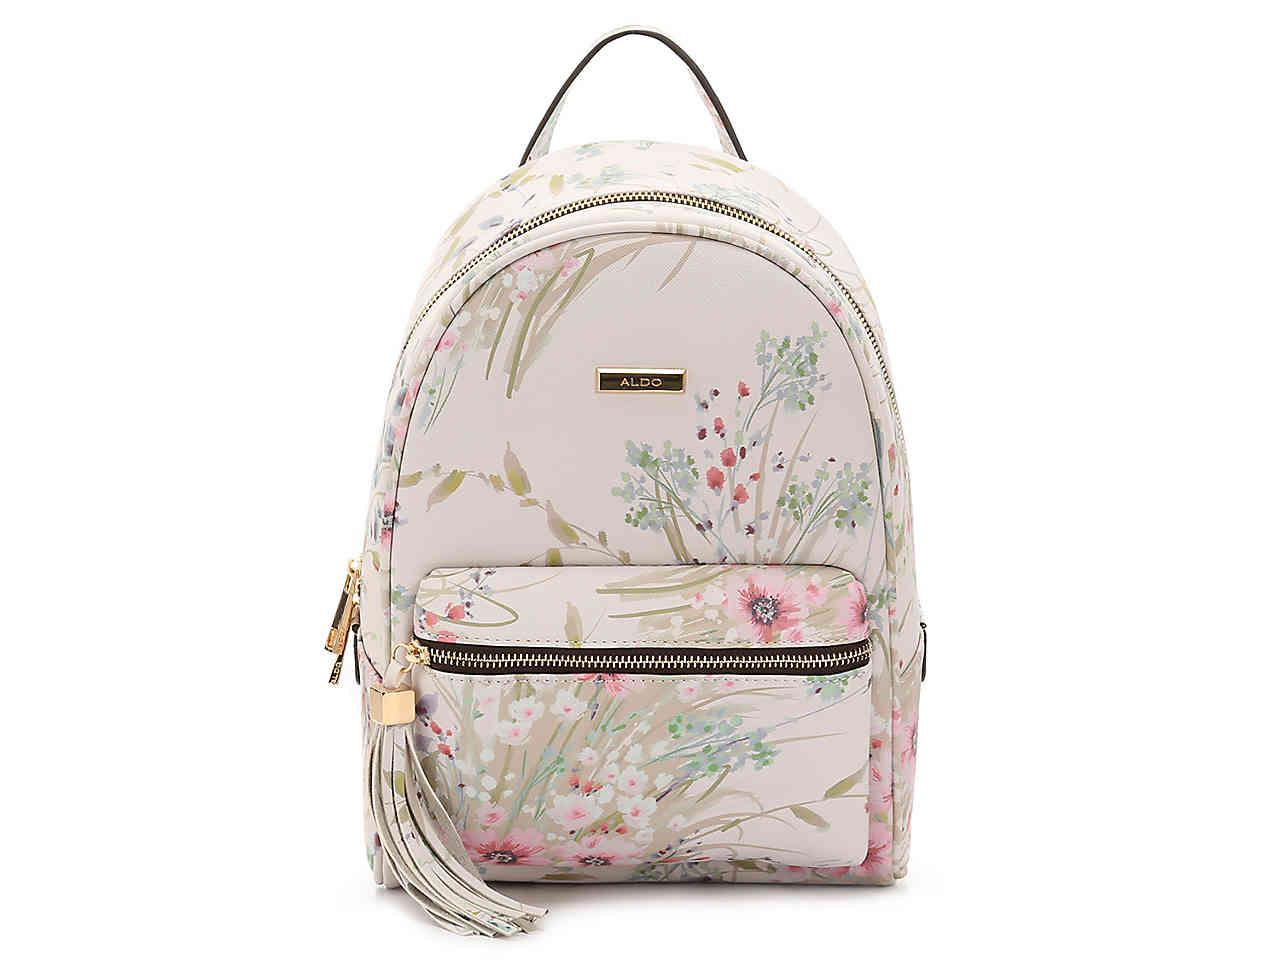 c6aa149e6e7 Lyst - ALDO Acenaria Mini Backpack